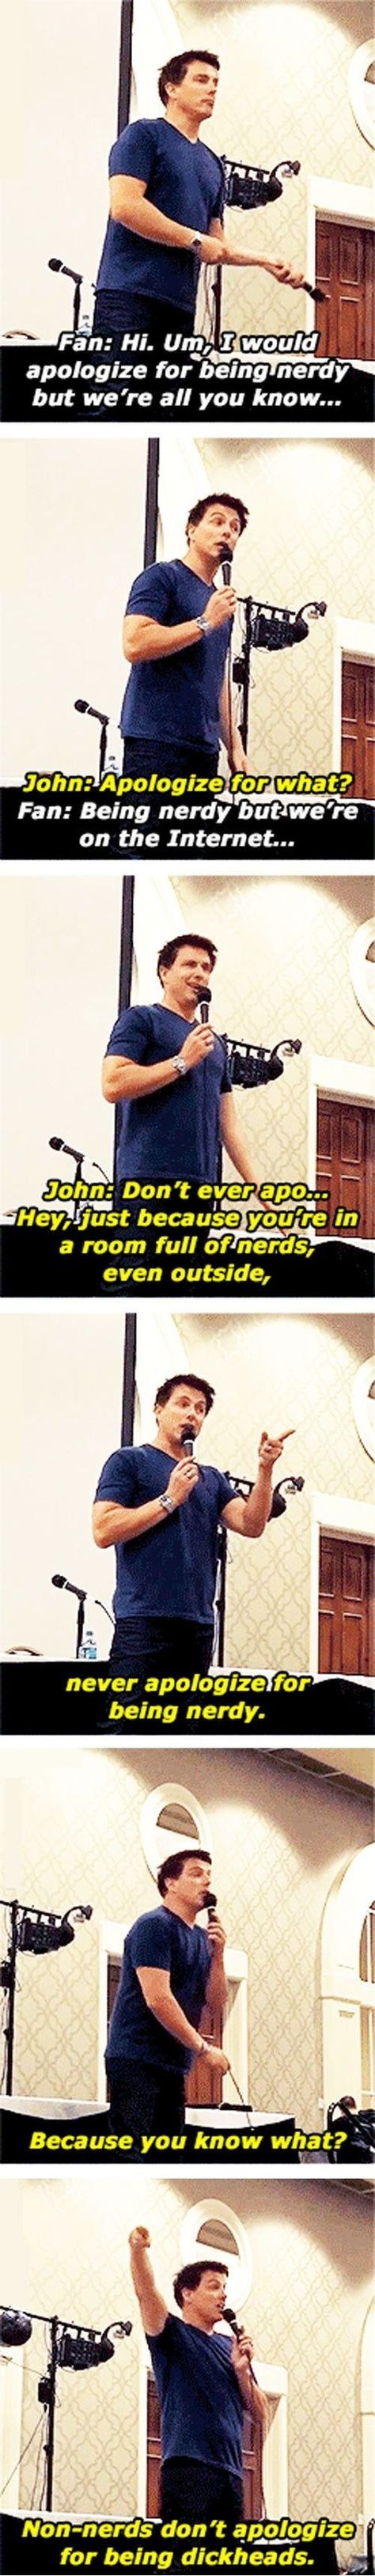 Never apologize for being a nerd. Gotta love John Barrowman - Doctor Who Doctor Who, The Doctor, Eleventh Doctor, John Barrowman, Sherlock, Fandoms Unite, Stark Tower, Space Man, Captain Jack Harkness